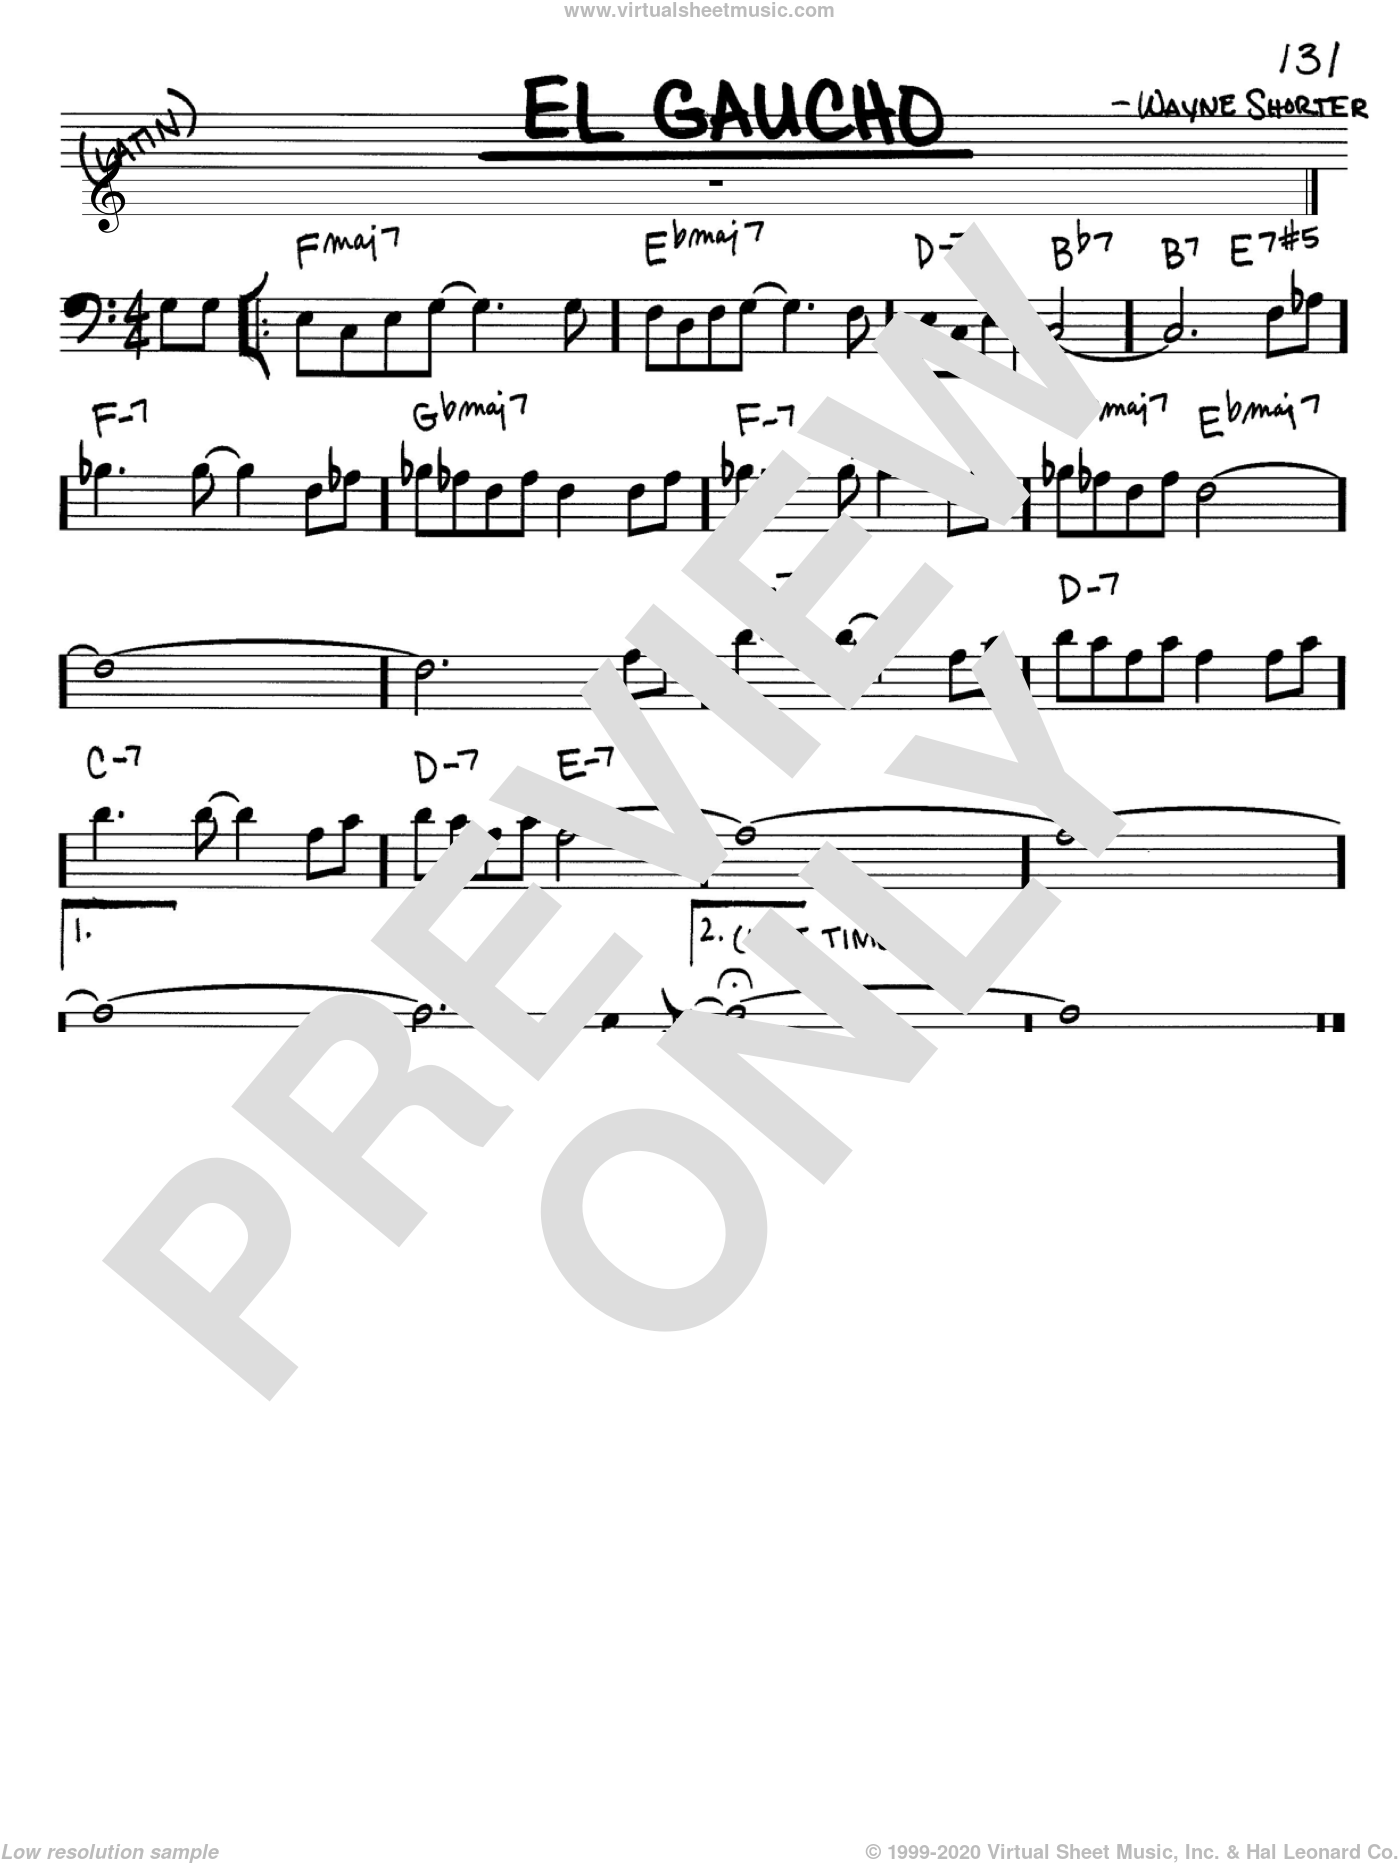 El Gaucho sheet music for voice and other instruments (Bass Clef ) by Wayne Shorter, intermediate voice. Score Image Preview.